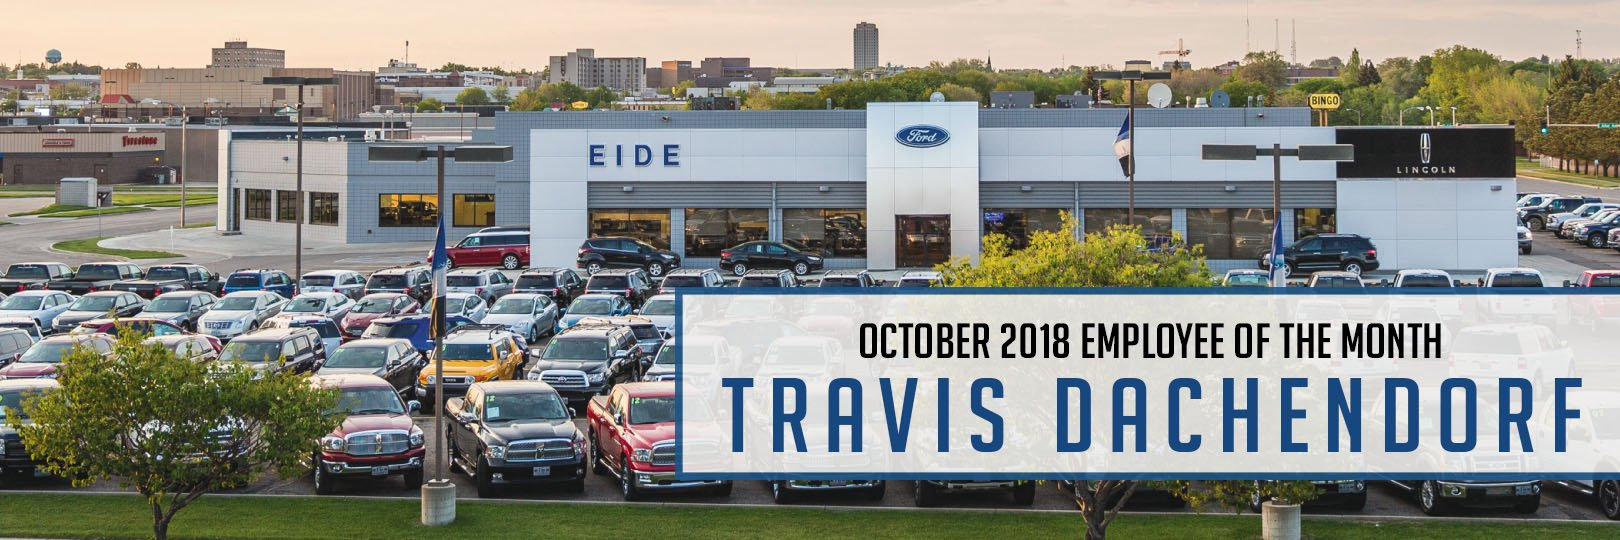 This month's Employee of the Month at Eide Ford is Travis Dachendorf.